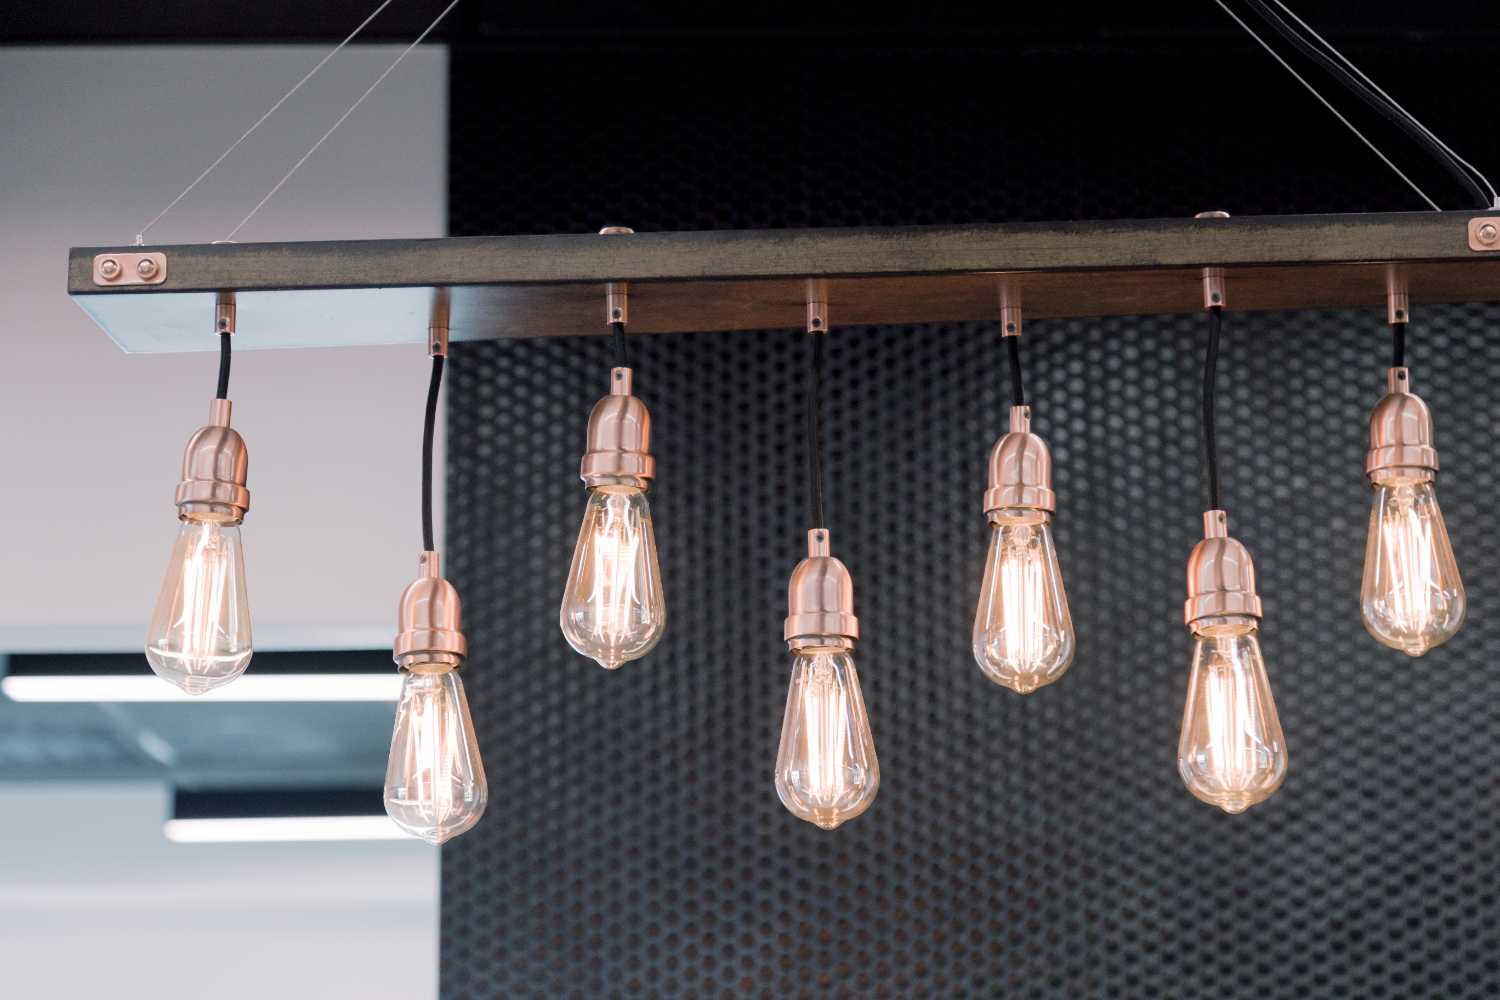 Photo of Edison light bulbs hanging down in our office